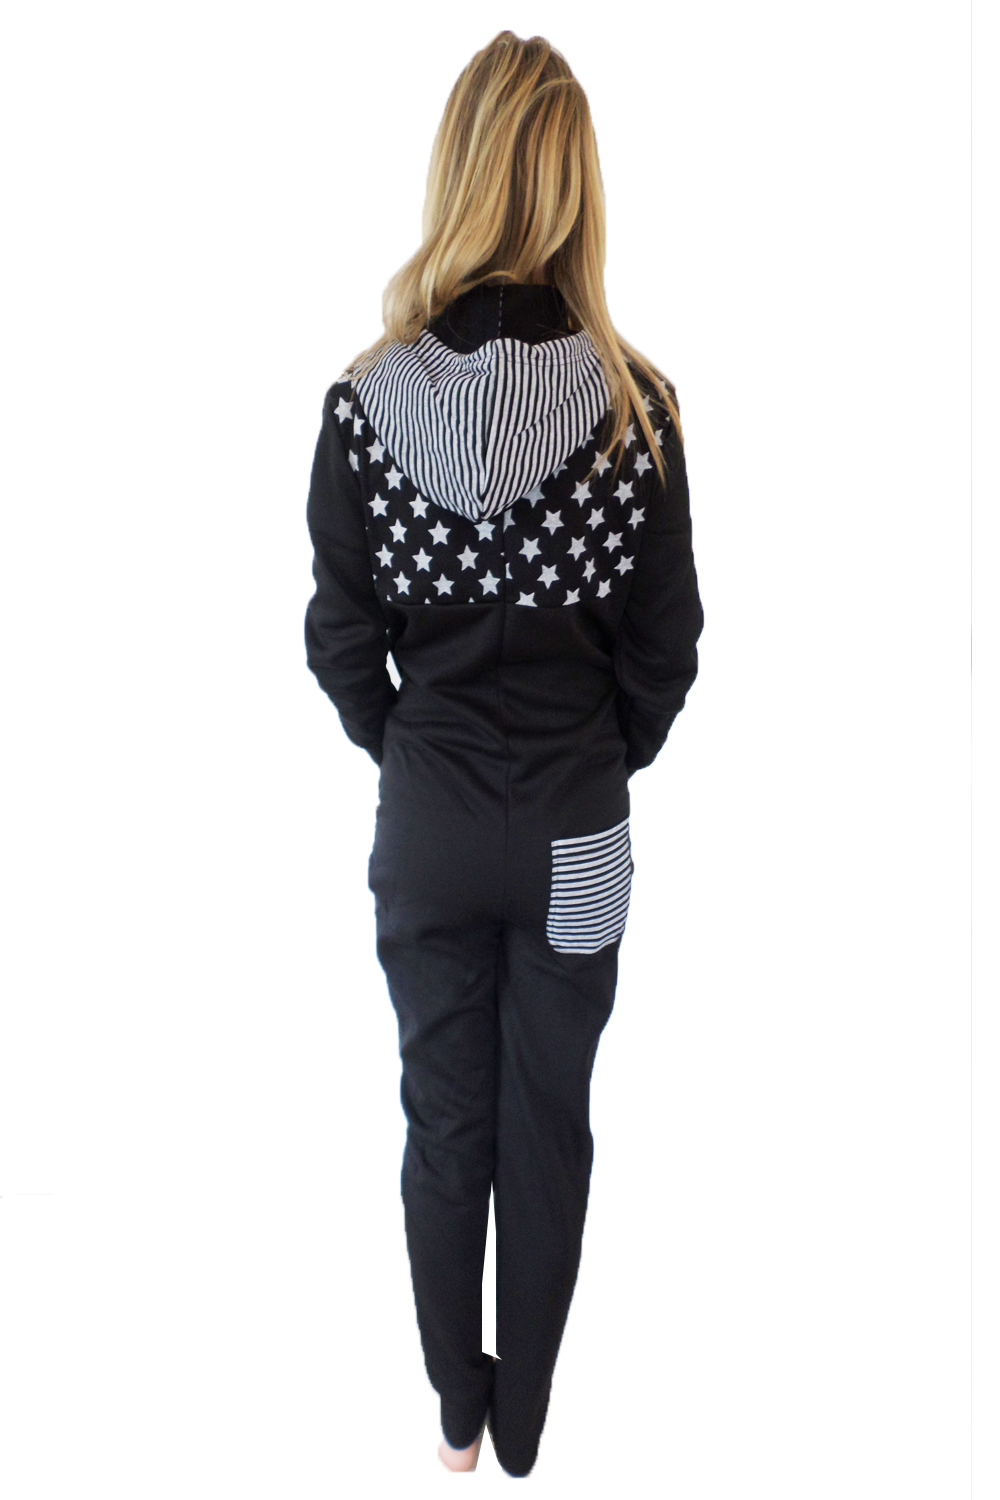 Belle Boutique Womens Hooded Star /& Stripes All In One Ladies Hooded Loungewear